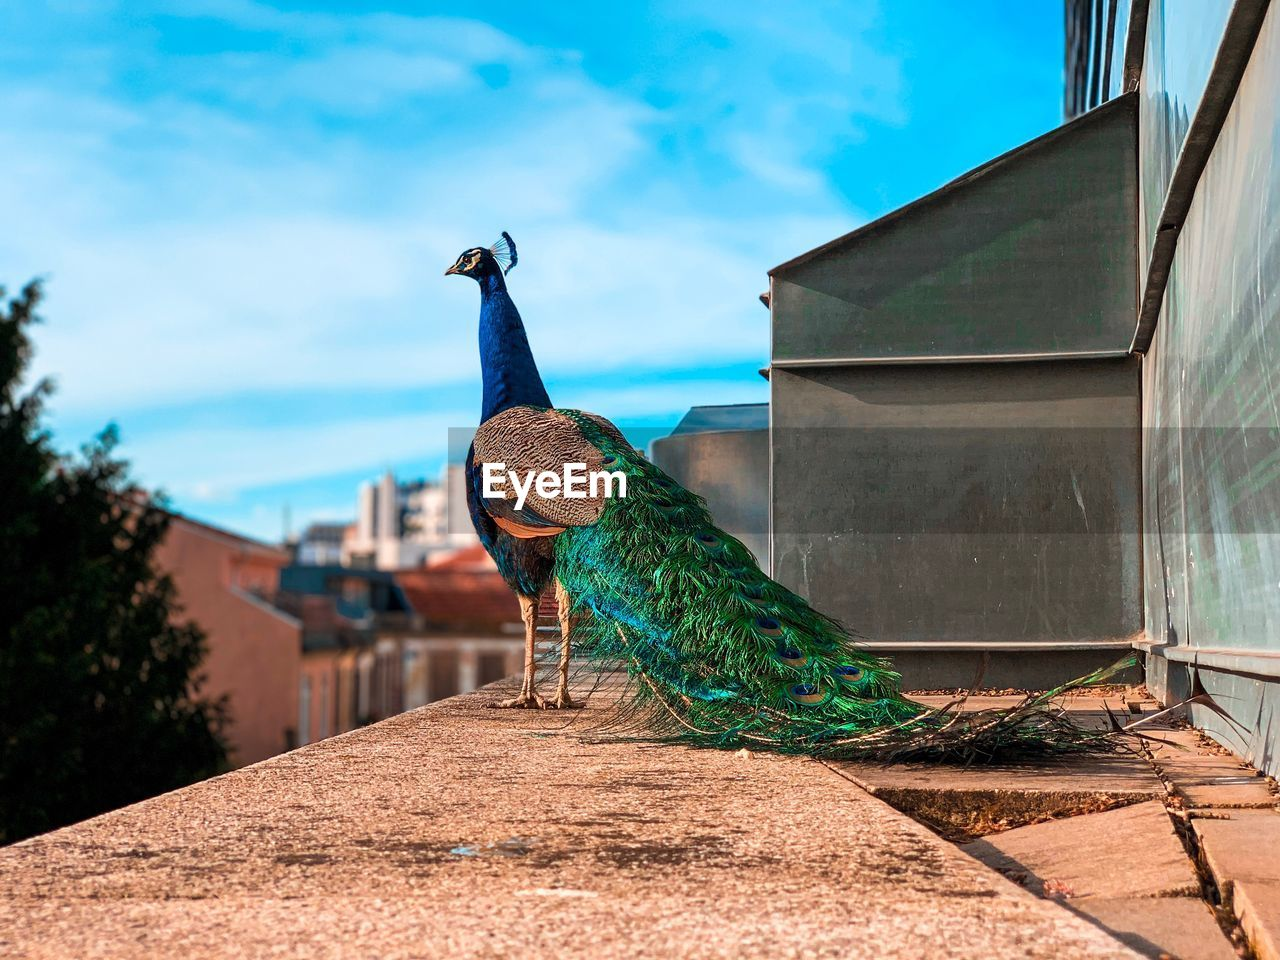 bird, animal themes, animal, one animal, architecture, animal wildlife, peacock, vertebrate, built structure, animals in the wild, day, building exterior, nature, no people, sky, focus on foreground, blue, retaining wall, outdoors, wall